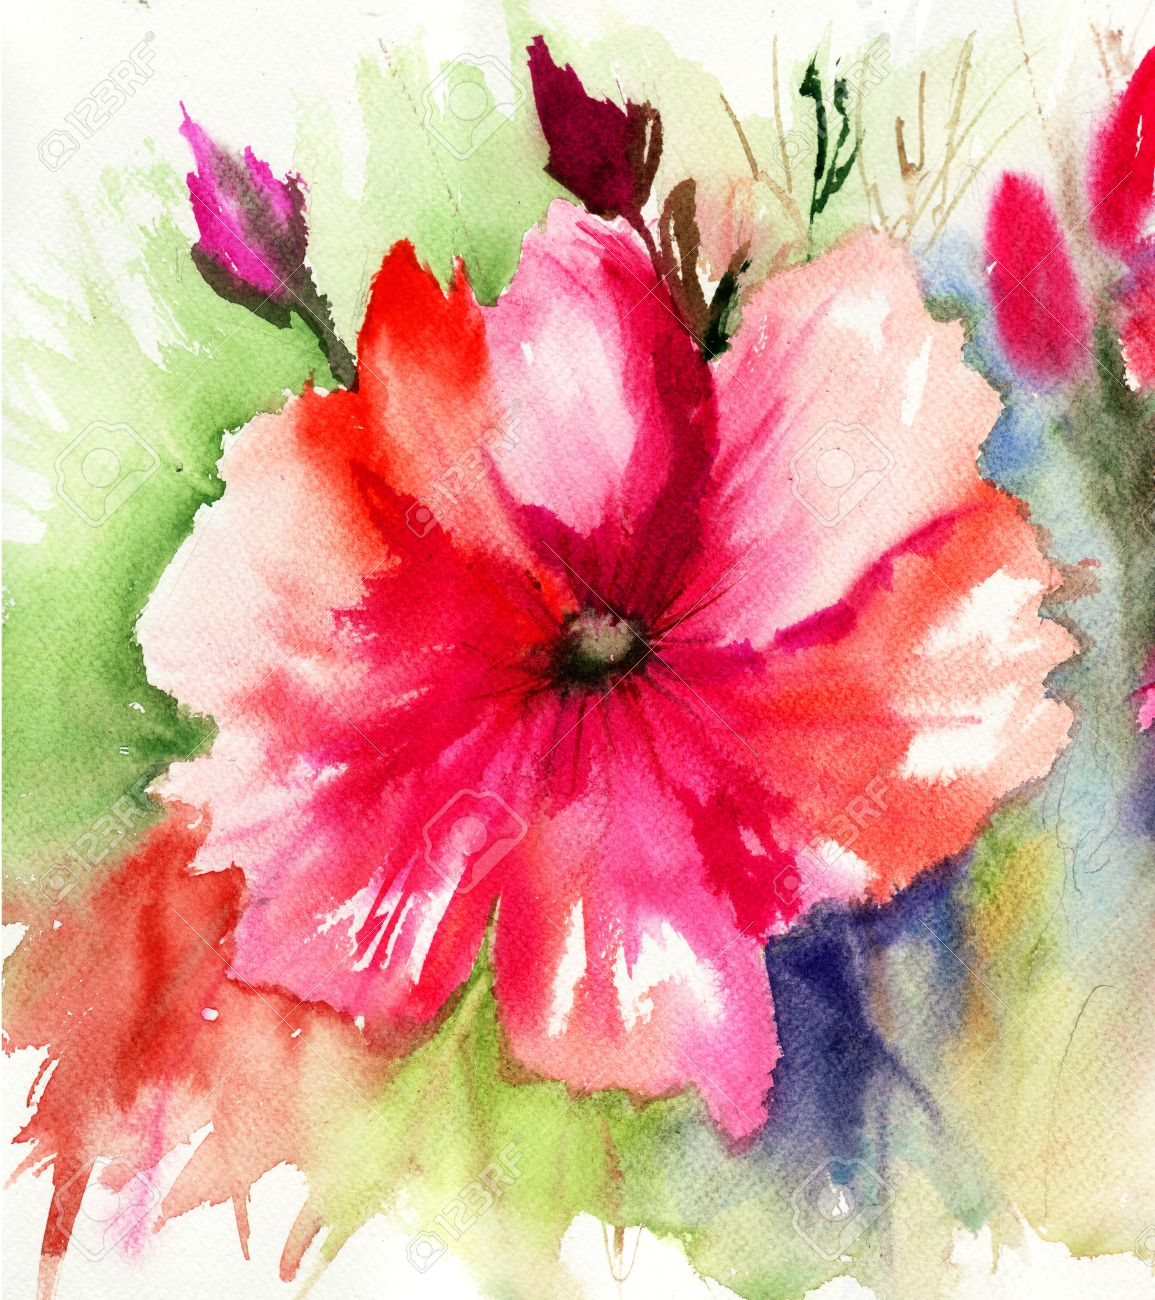 Beautiful pink flower watercolor painting stock photo picture and beautiful pink flower watercolor painting stock photo 17664648 izmirmasajfo Image collections